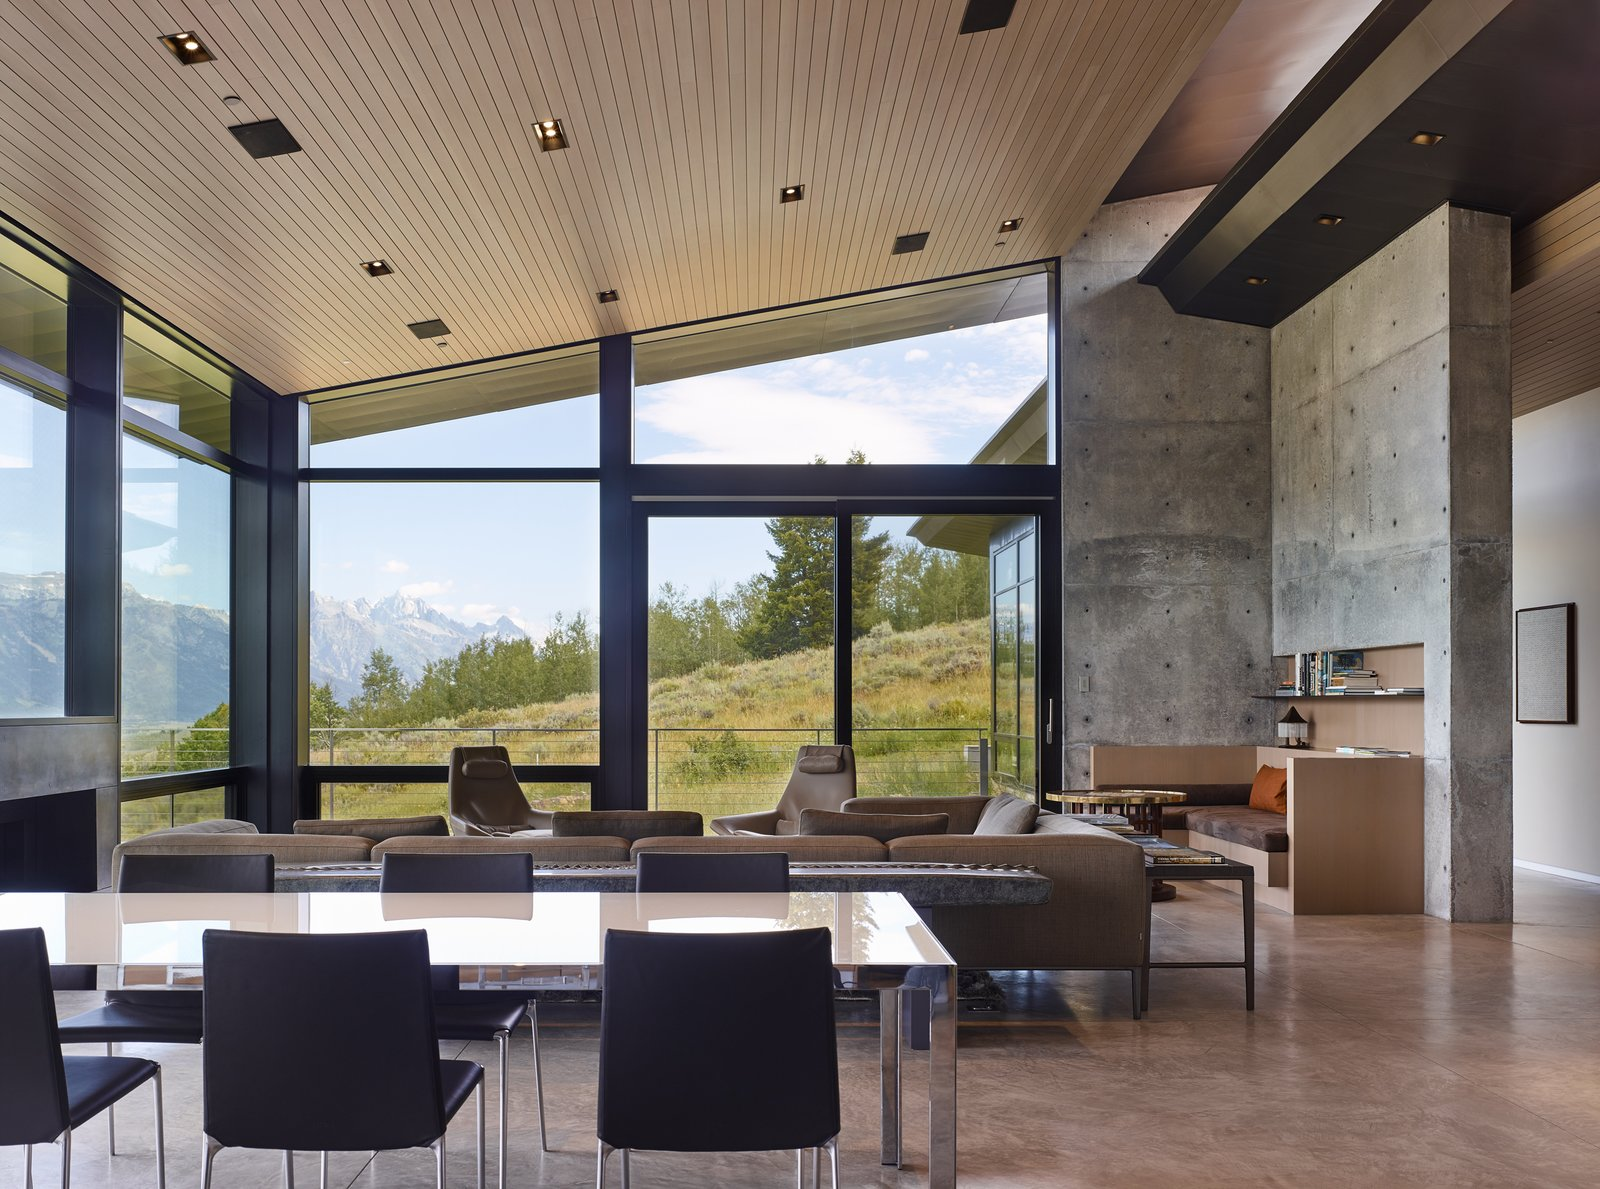 Dining Room, Chair, Table, Recessed Lighting, Standard Layout Fireplace, and Concrete Floor Floor-to-ceiling windows unveil a view of the stunning exterior scenery.  Wyoming Residence by Abramson Teiger Architects